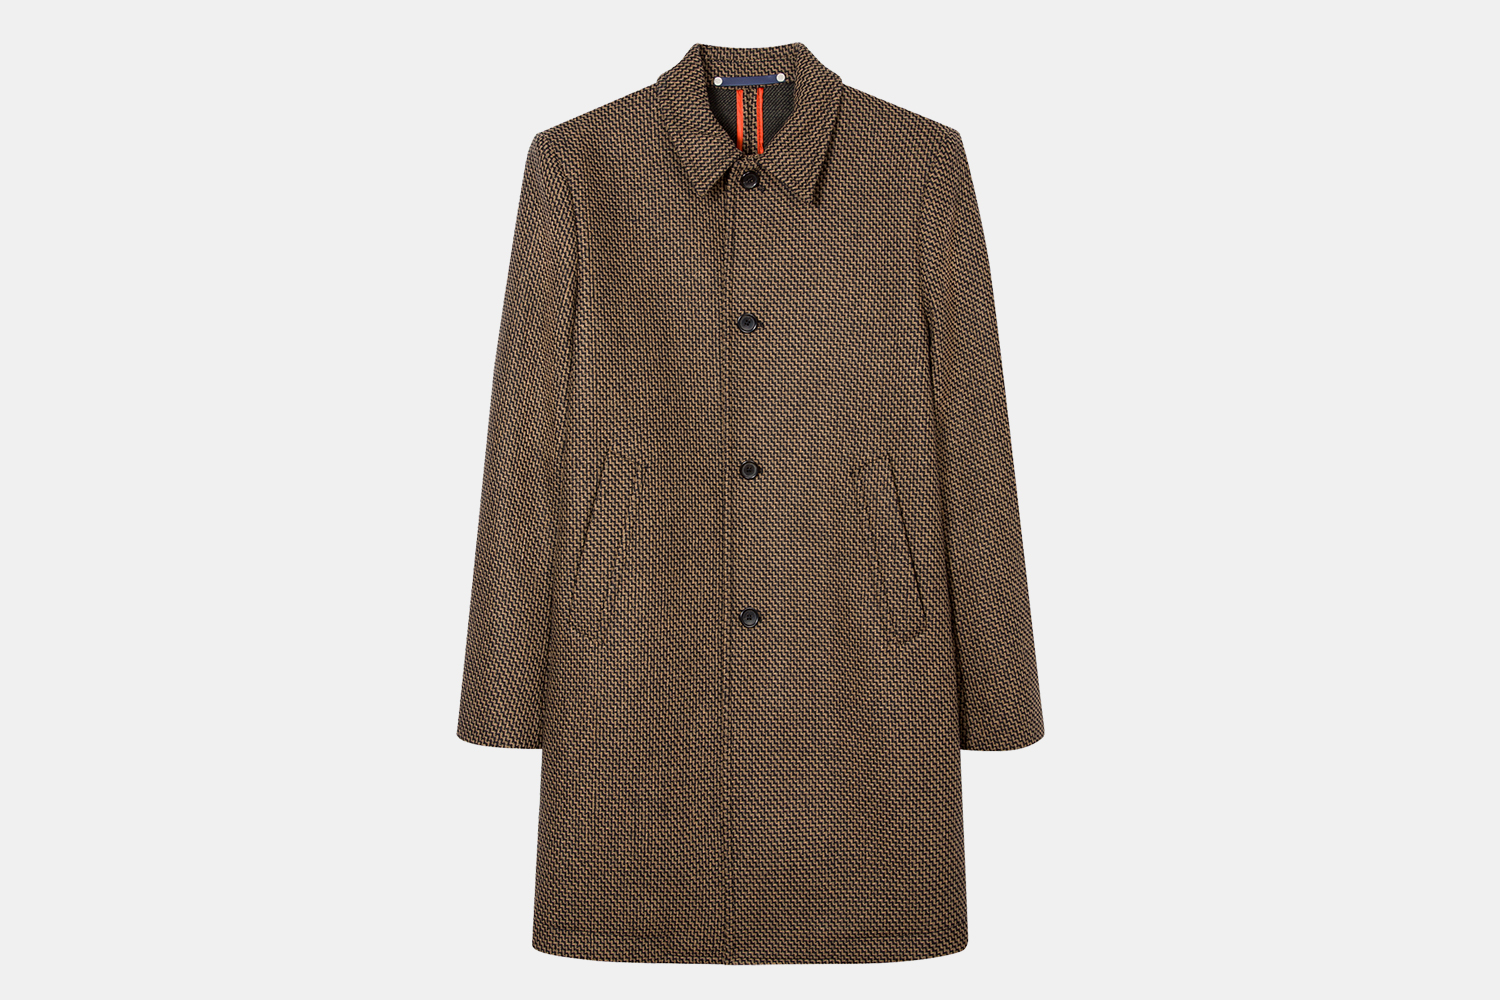 Paul Smith Recycled Wool-Blend Zig-Zag Pattern Overcoat Sale